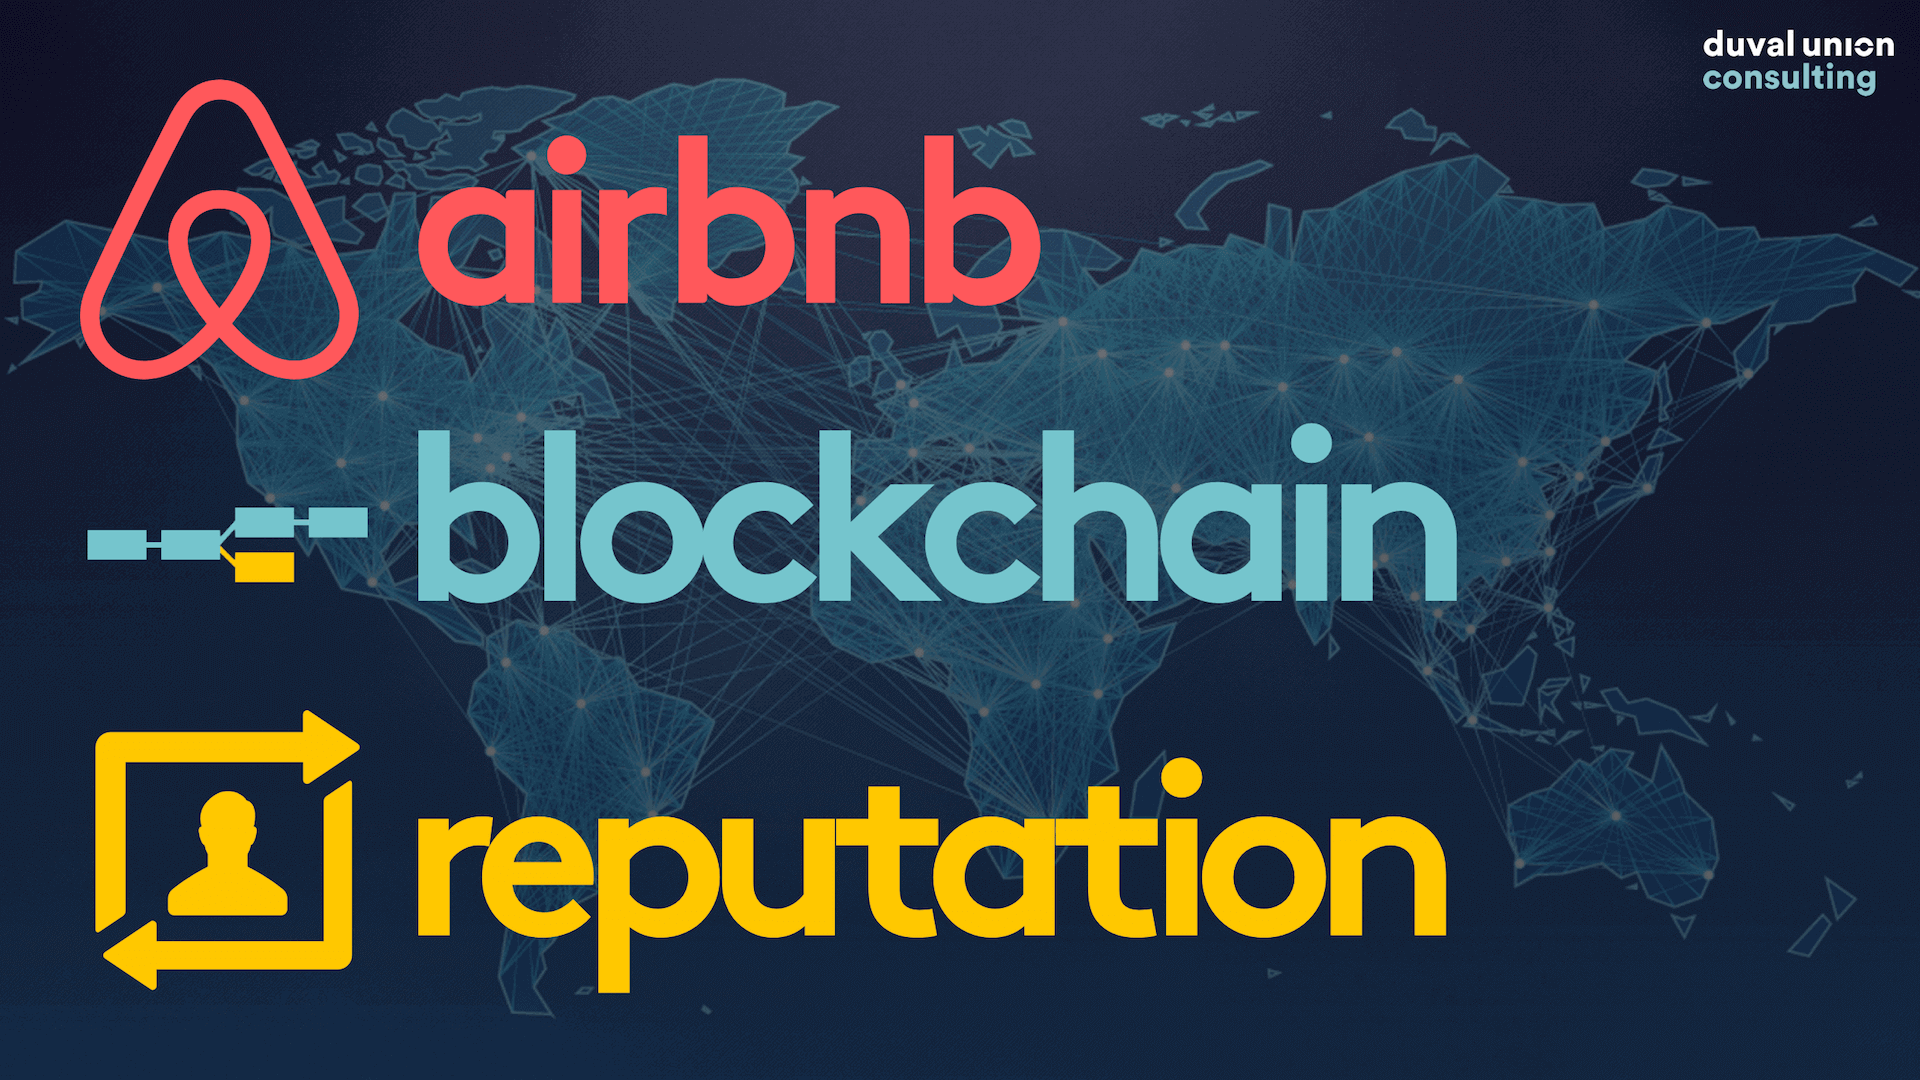 Airbnb Blockchain Reputation